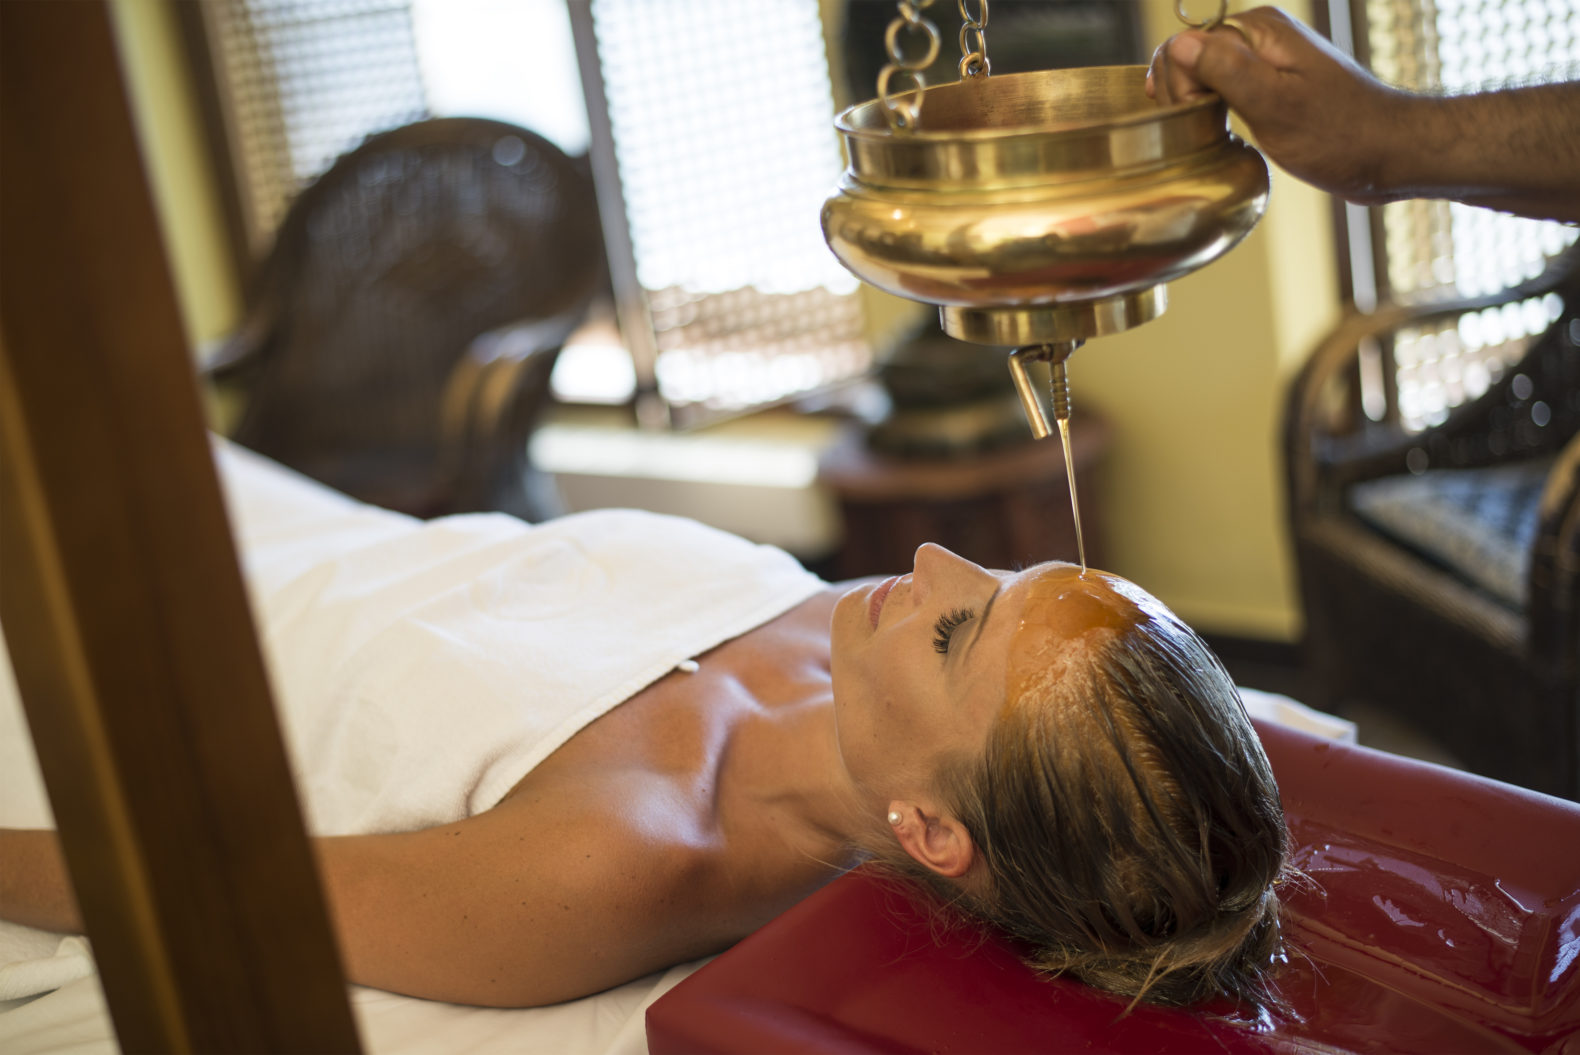 ayurveda-treatment-oil-cleansing-woman-therapy-medical-kurhaus-schaerding-austria